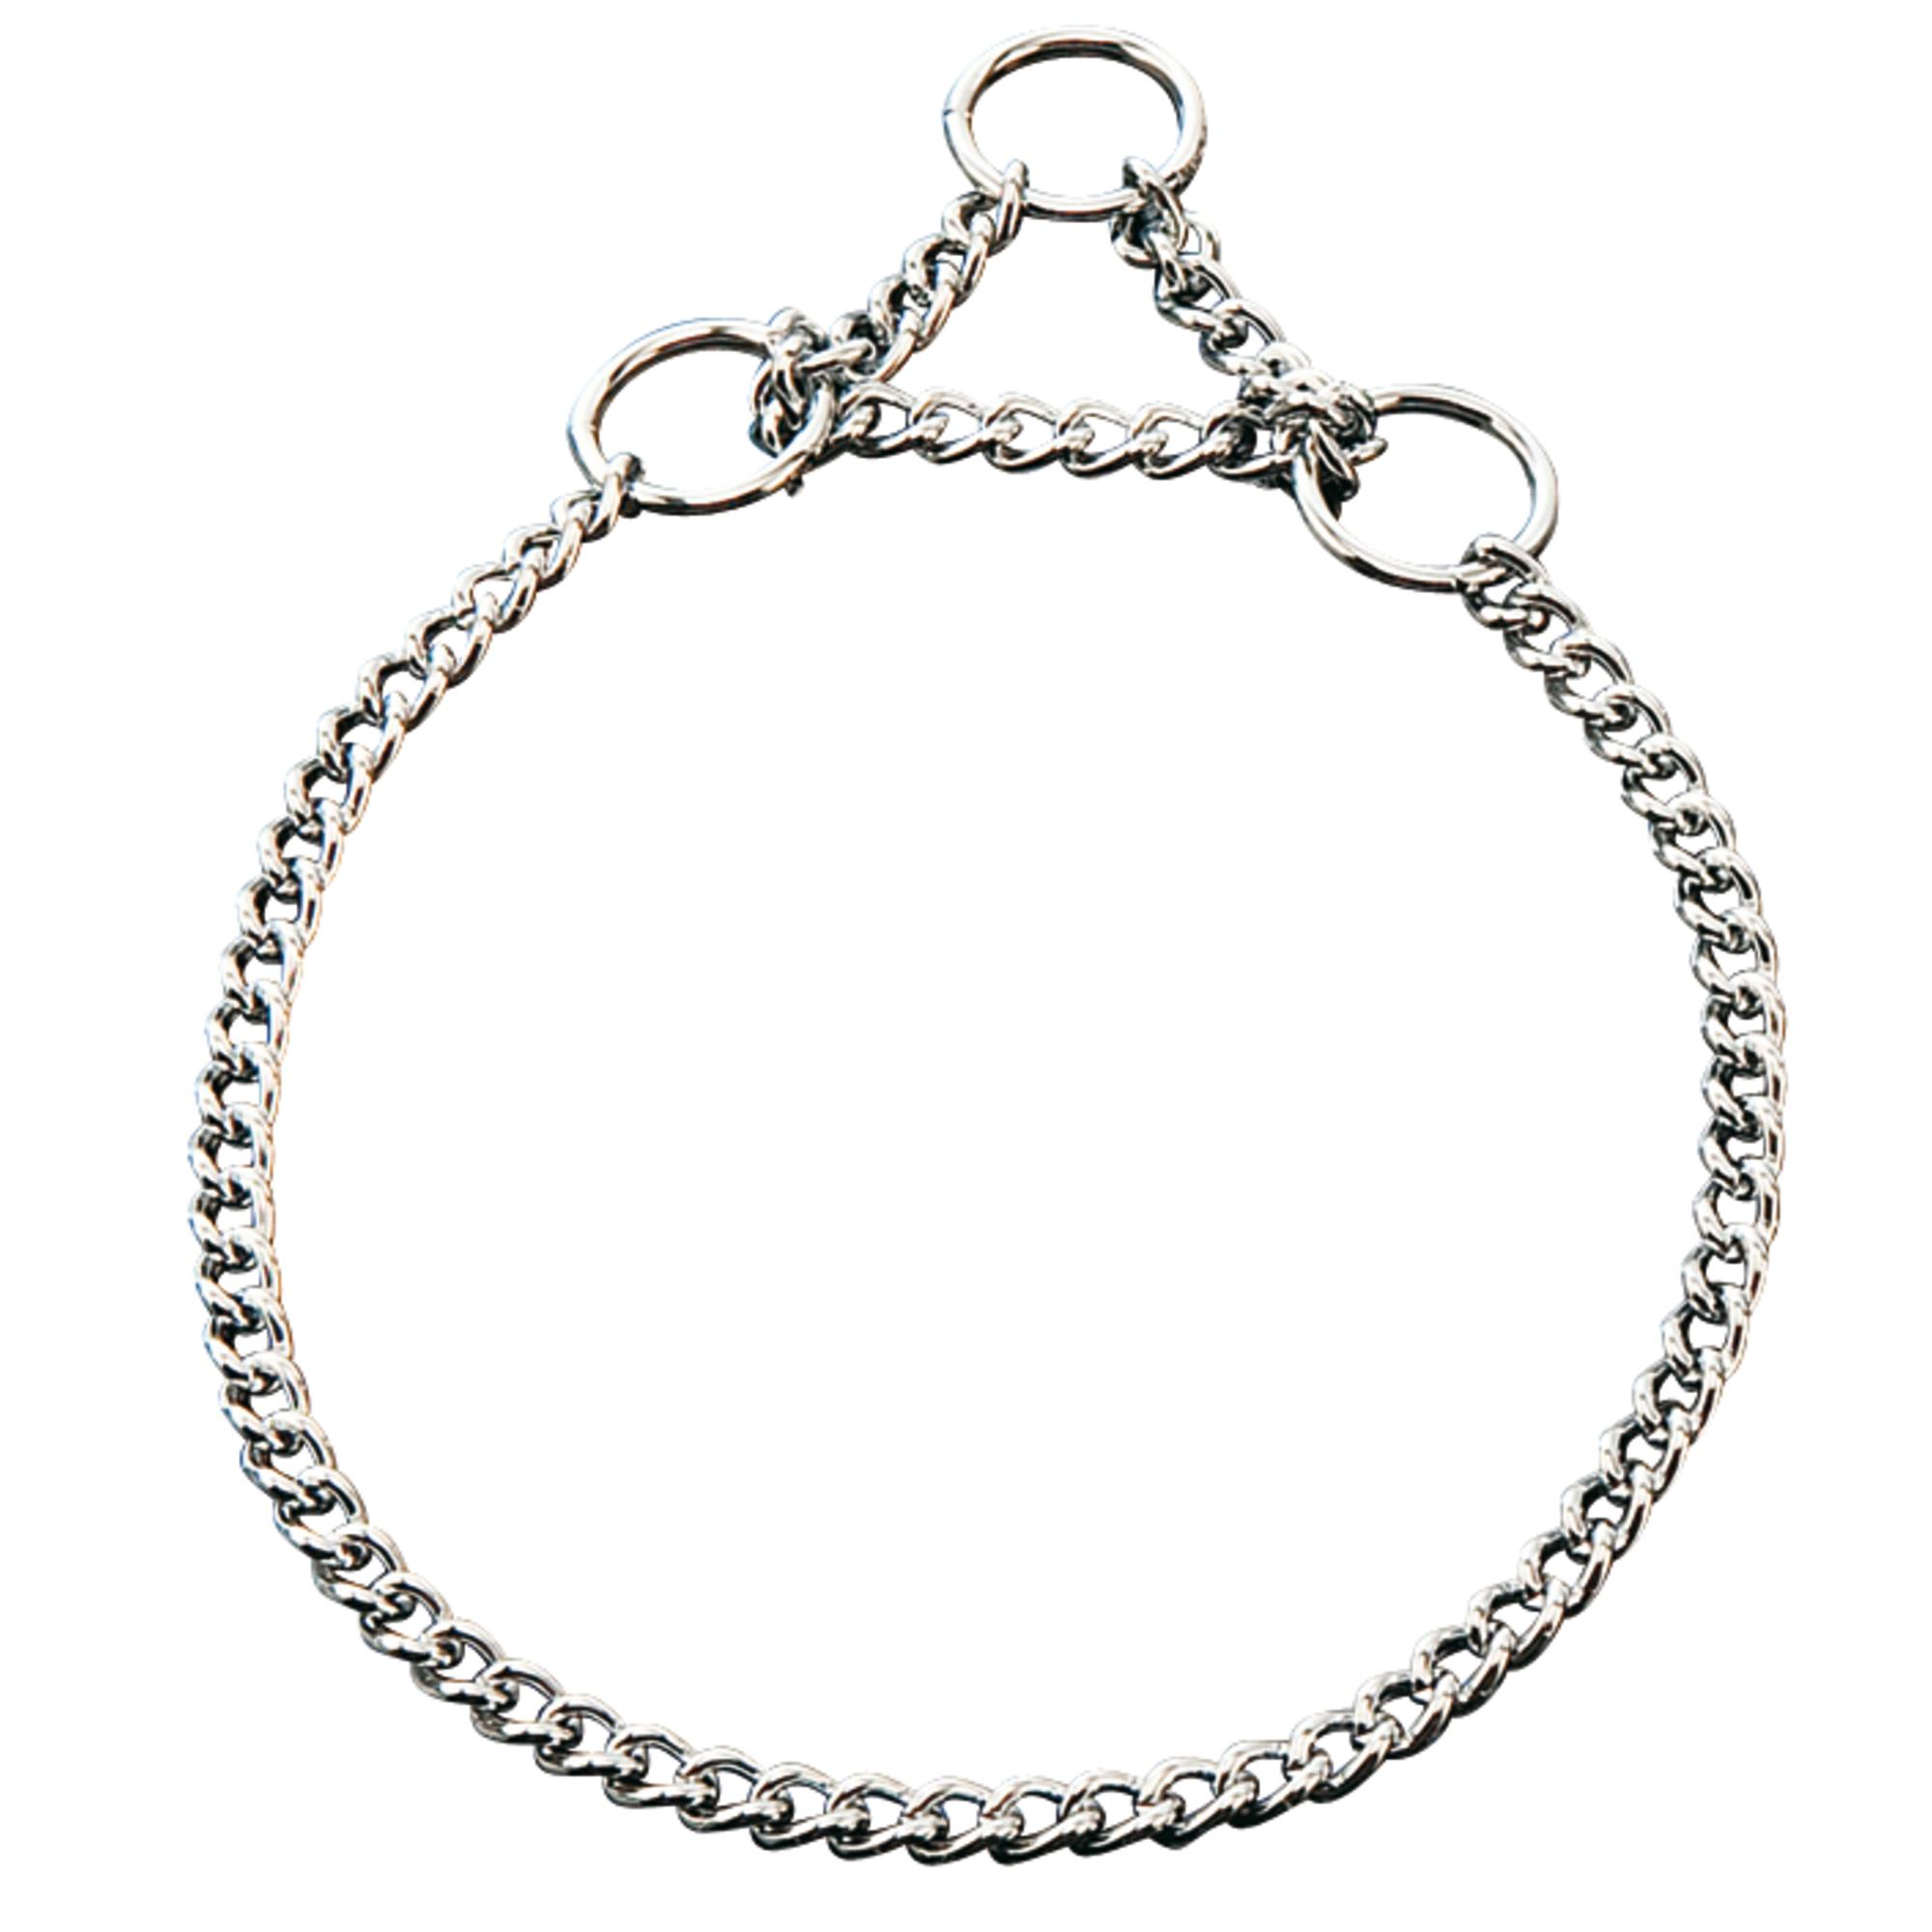 Collar With Limited Traction Steel Chrome Plated 1 5 Mm